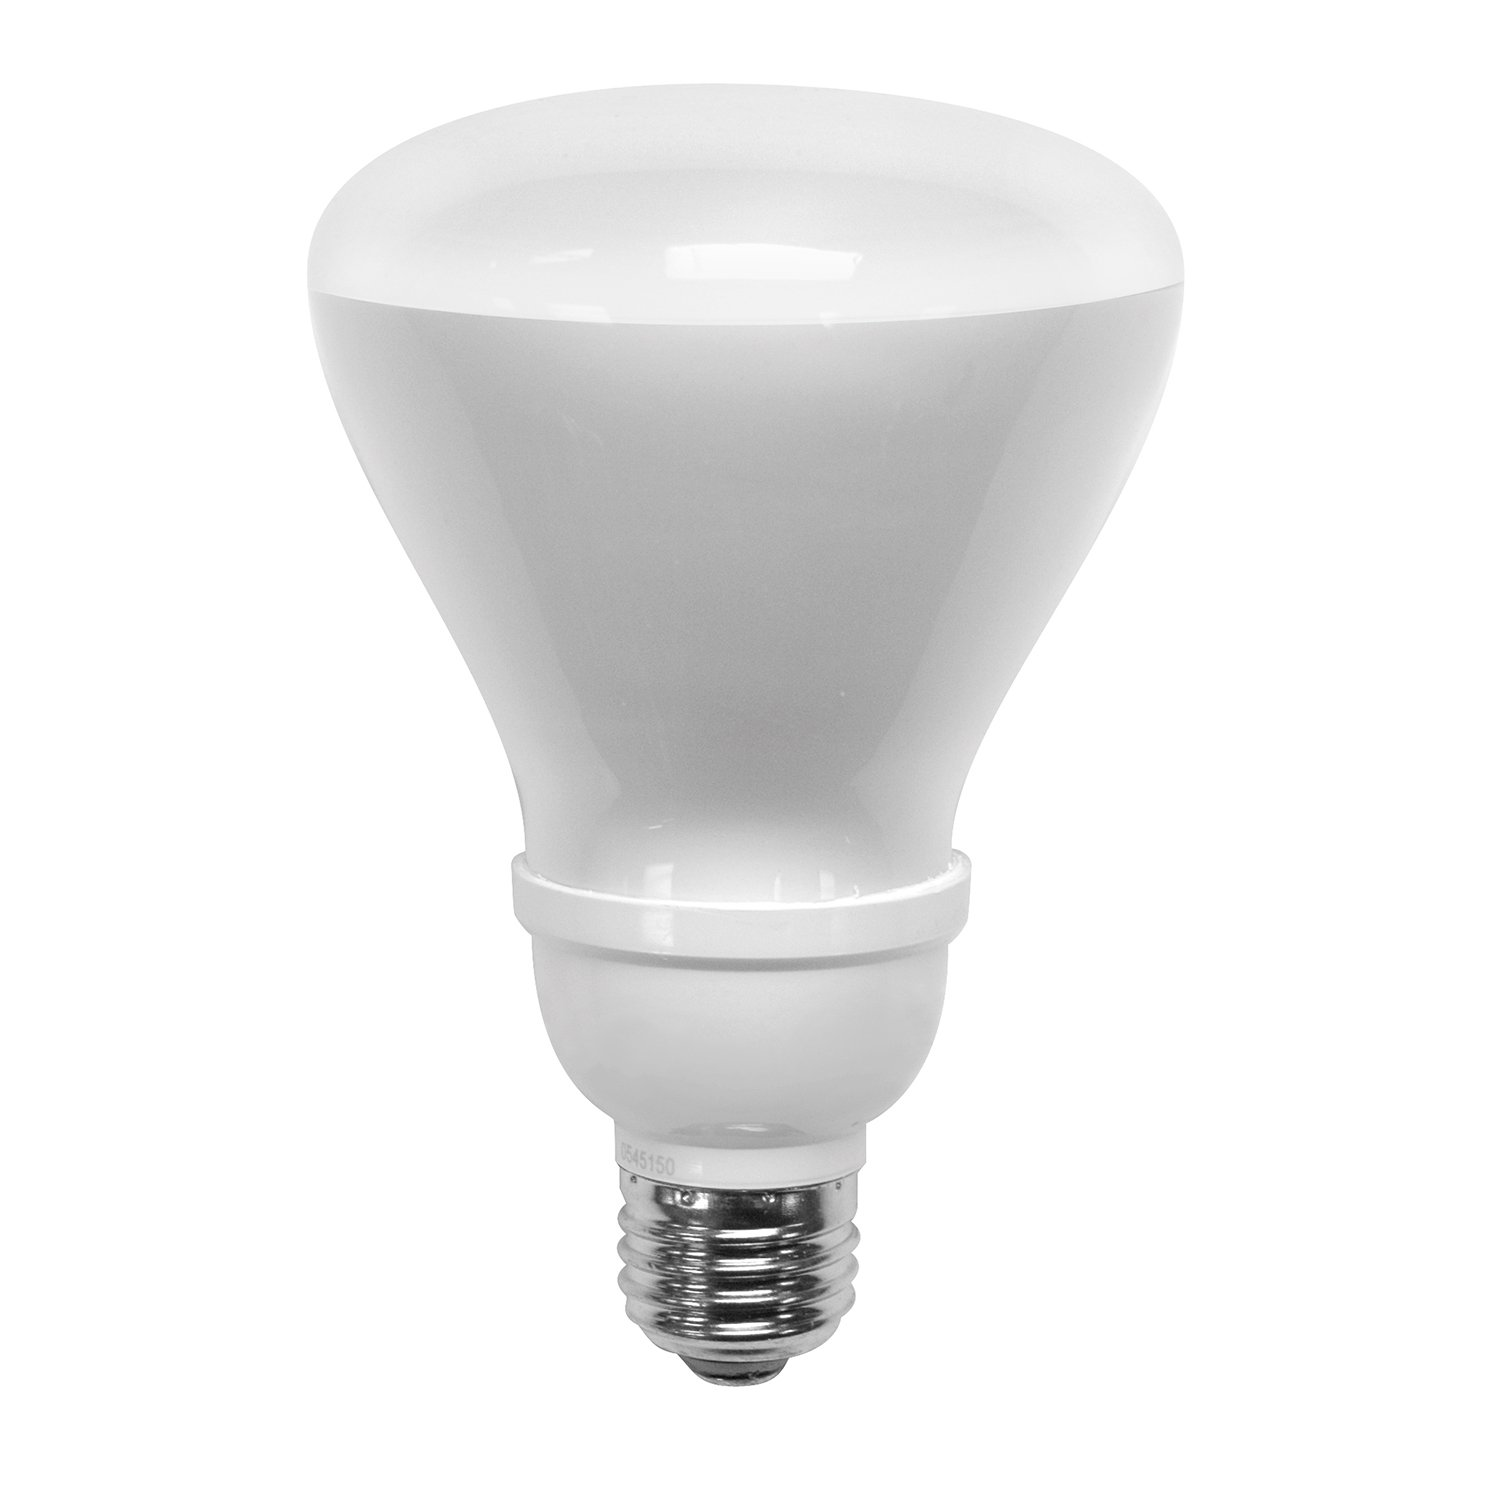 TCP 6R3014DL CFL BR30 65 Watt Equivalent (14W) Daylight (5000K) Everyday Flood Light Bulb by TCP